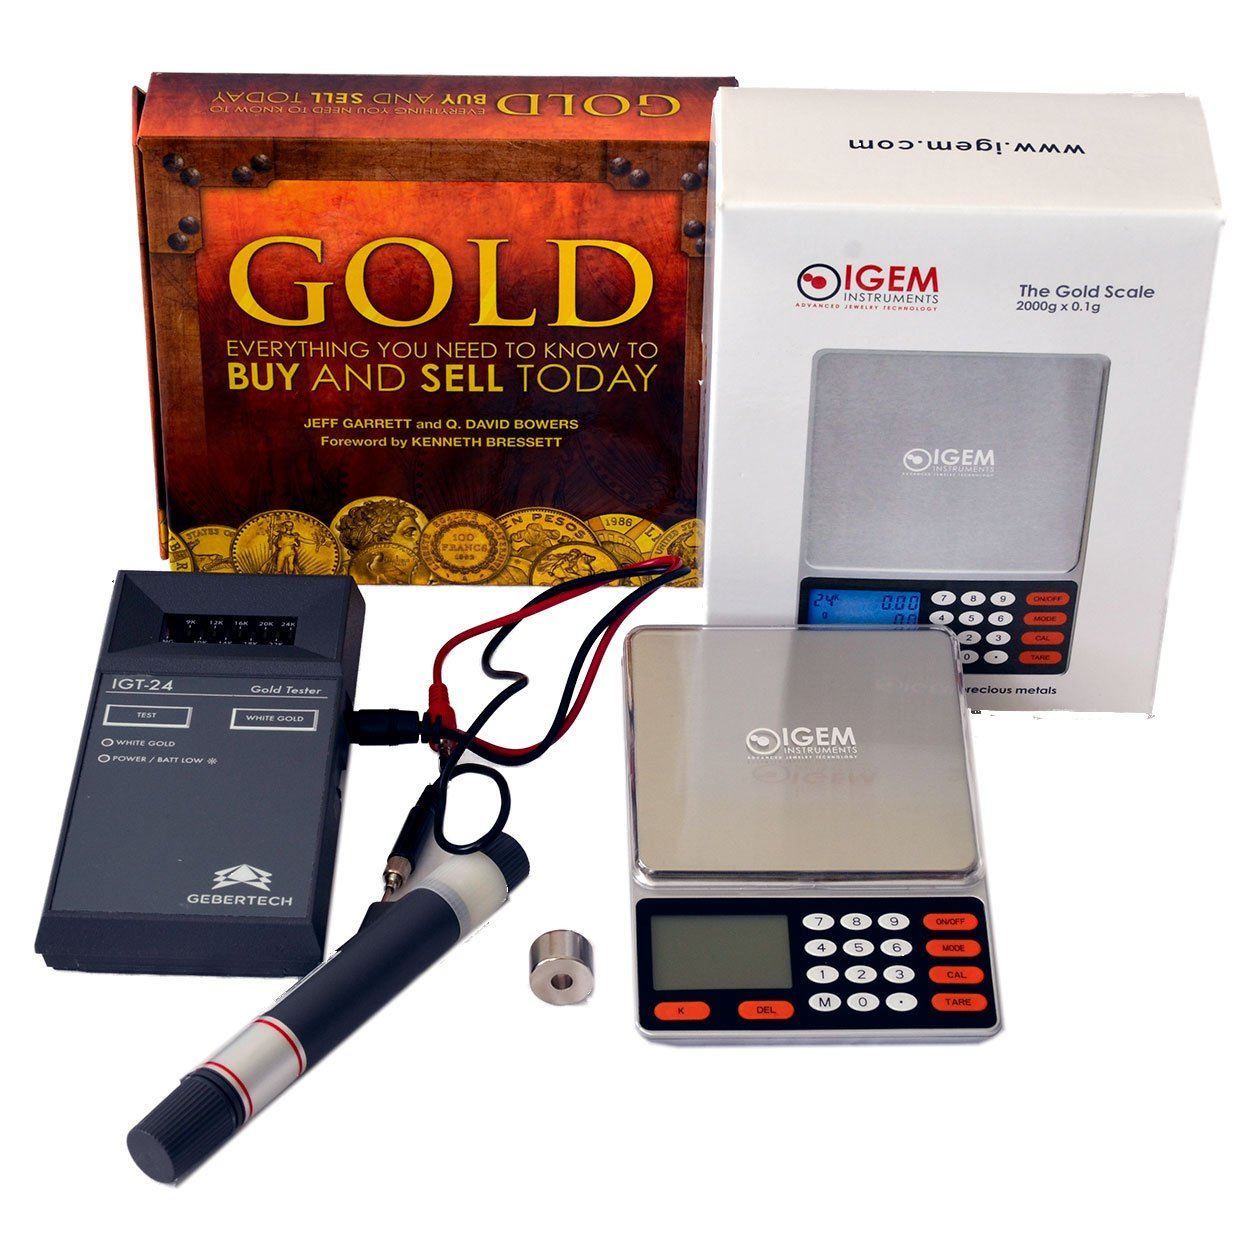 Gebertech IGT-24 Electronic Gold Tester Gold Buying Kit With Rare Earth Magnet, Portable Self Calculating Scale, and Gold Buying & Selling Book